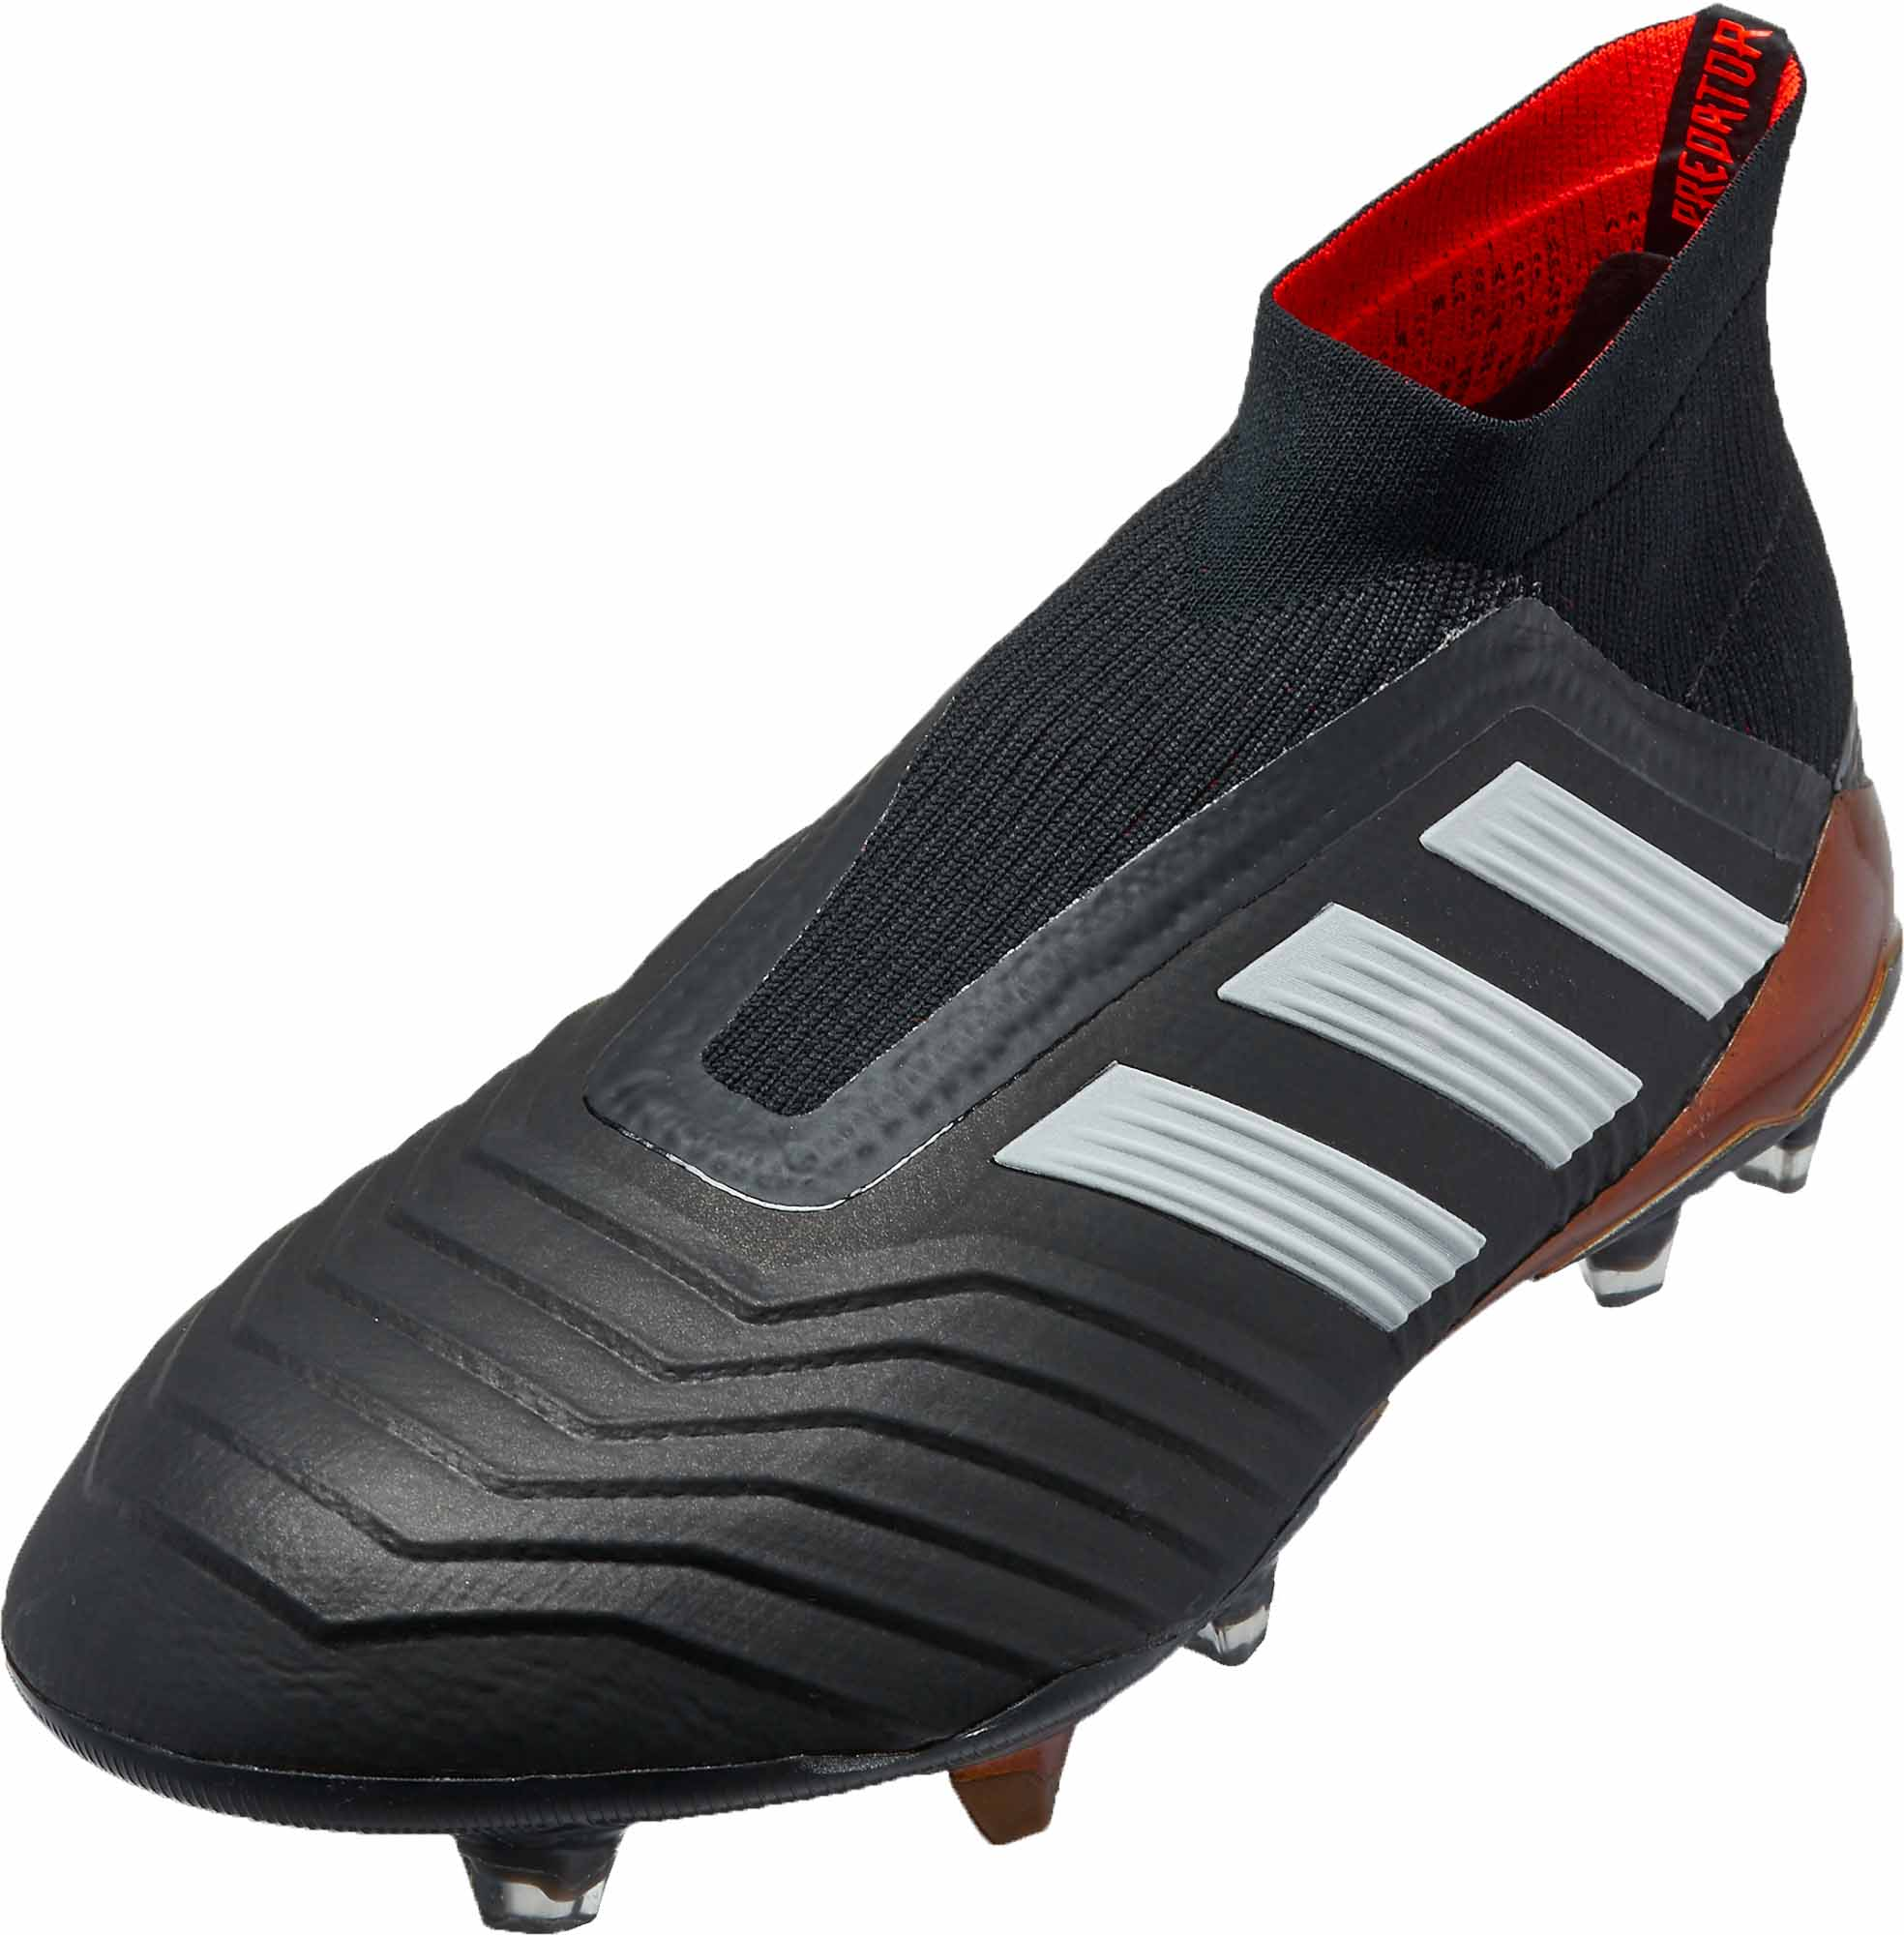 big sale 5d4b4 c7999 adidas Predator 18 FG – BlackSolar Red